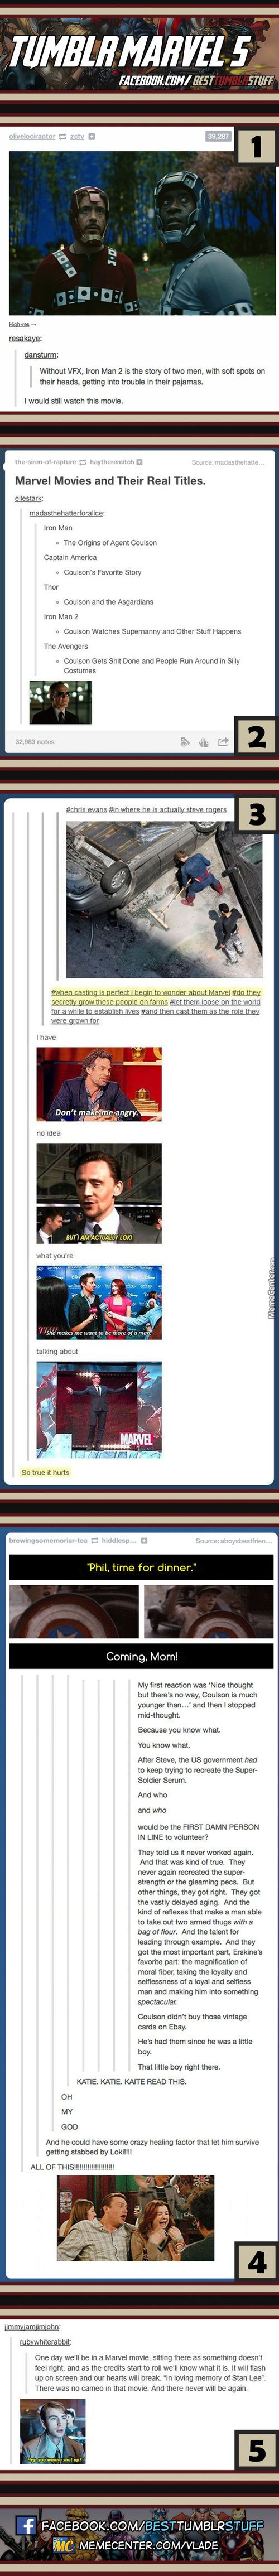 Marvel Tumblr 5 Memes. Best Collection of Funny Marvel Tumblr 5 Pictures